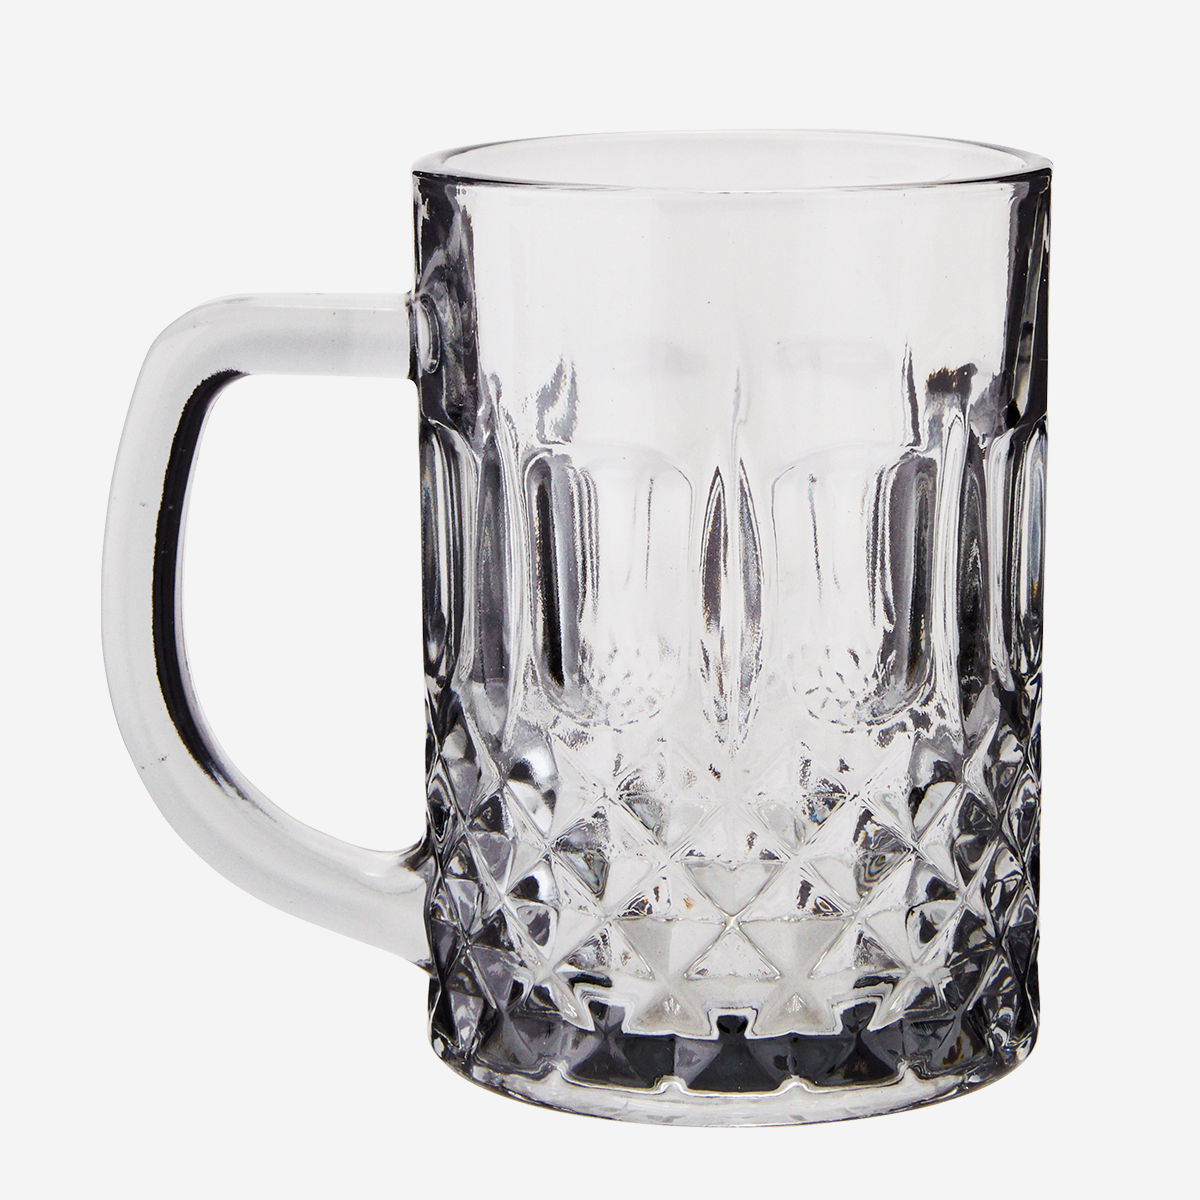 Drinking glass w/ handle